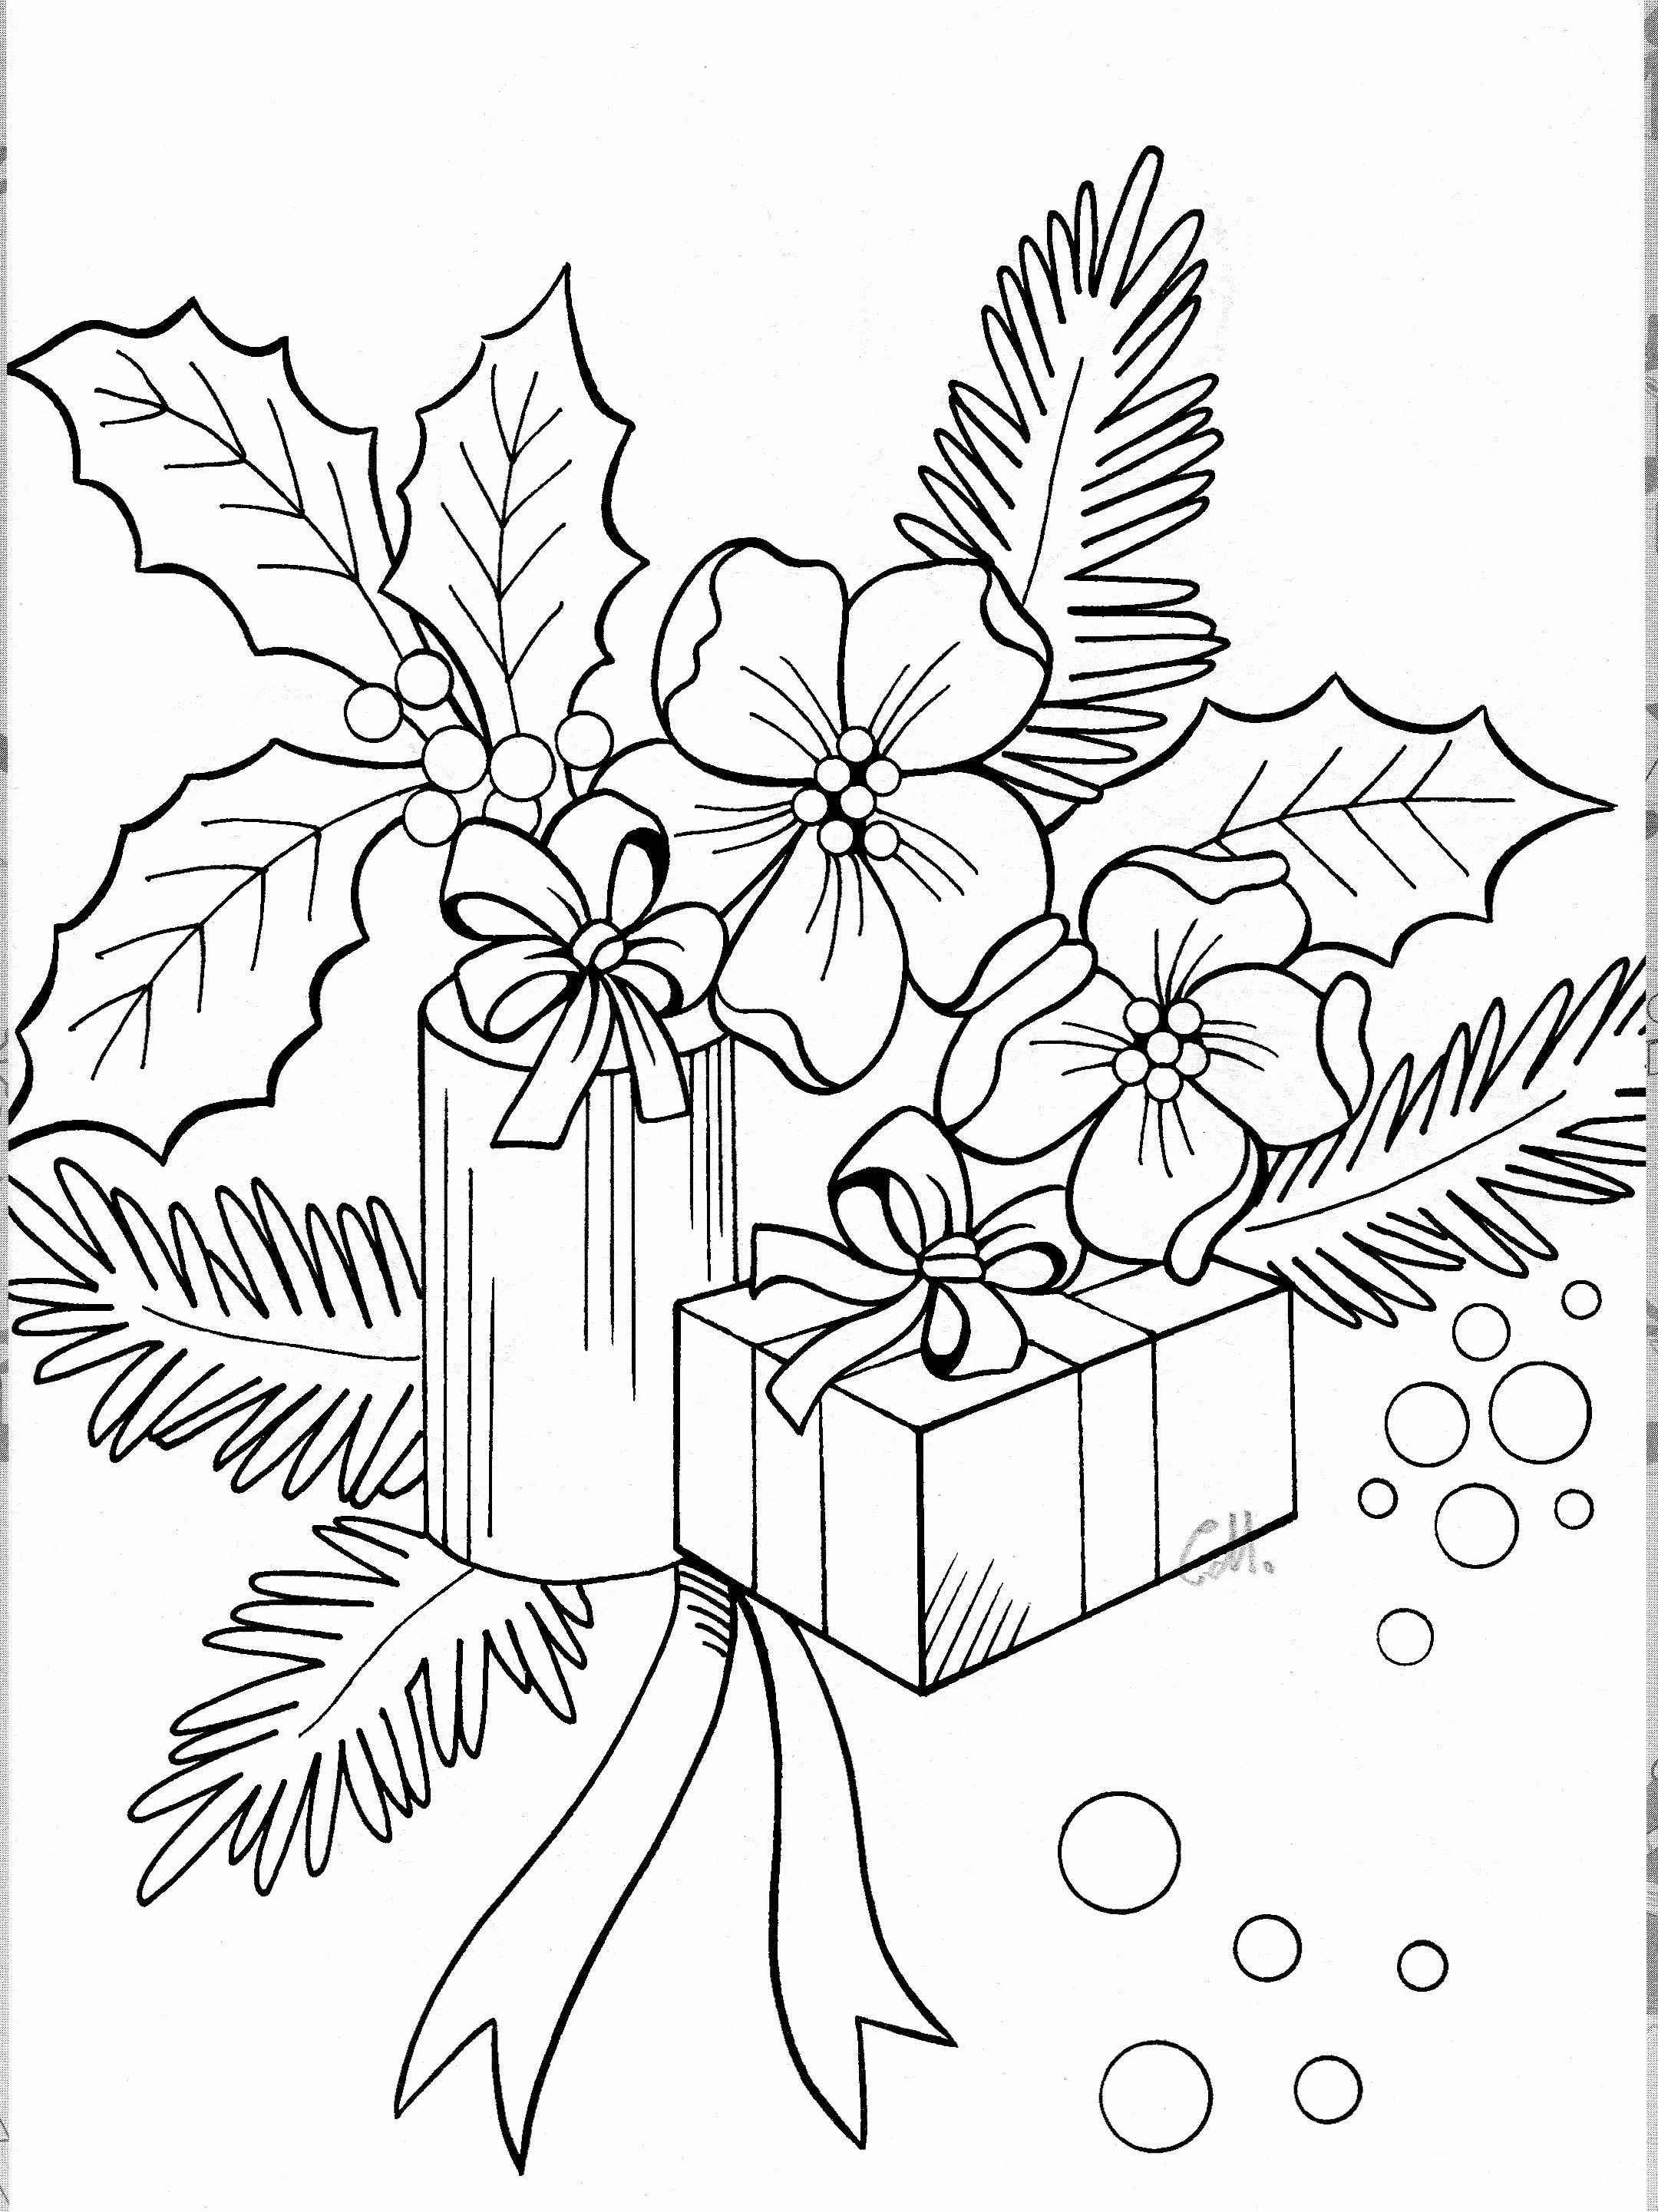 Coloring Book Artist Reviews Lovely Holiday Gift Coloring Page New Coloring Pages To Print Nocn Christmas Coloring Pages Coloring Pages Coloring Books